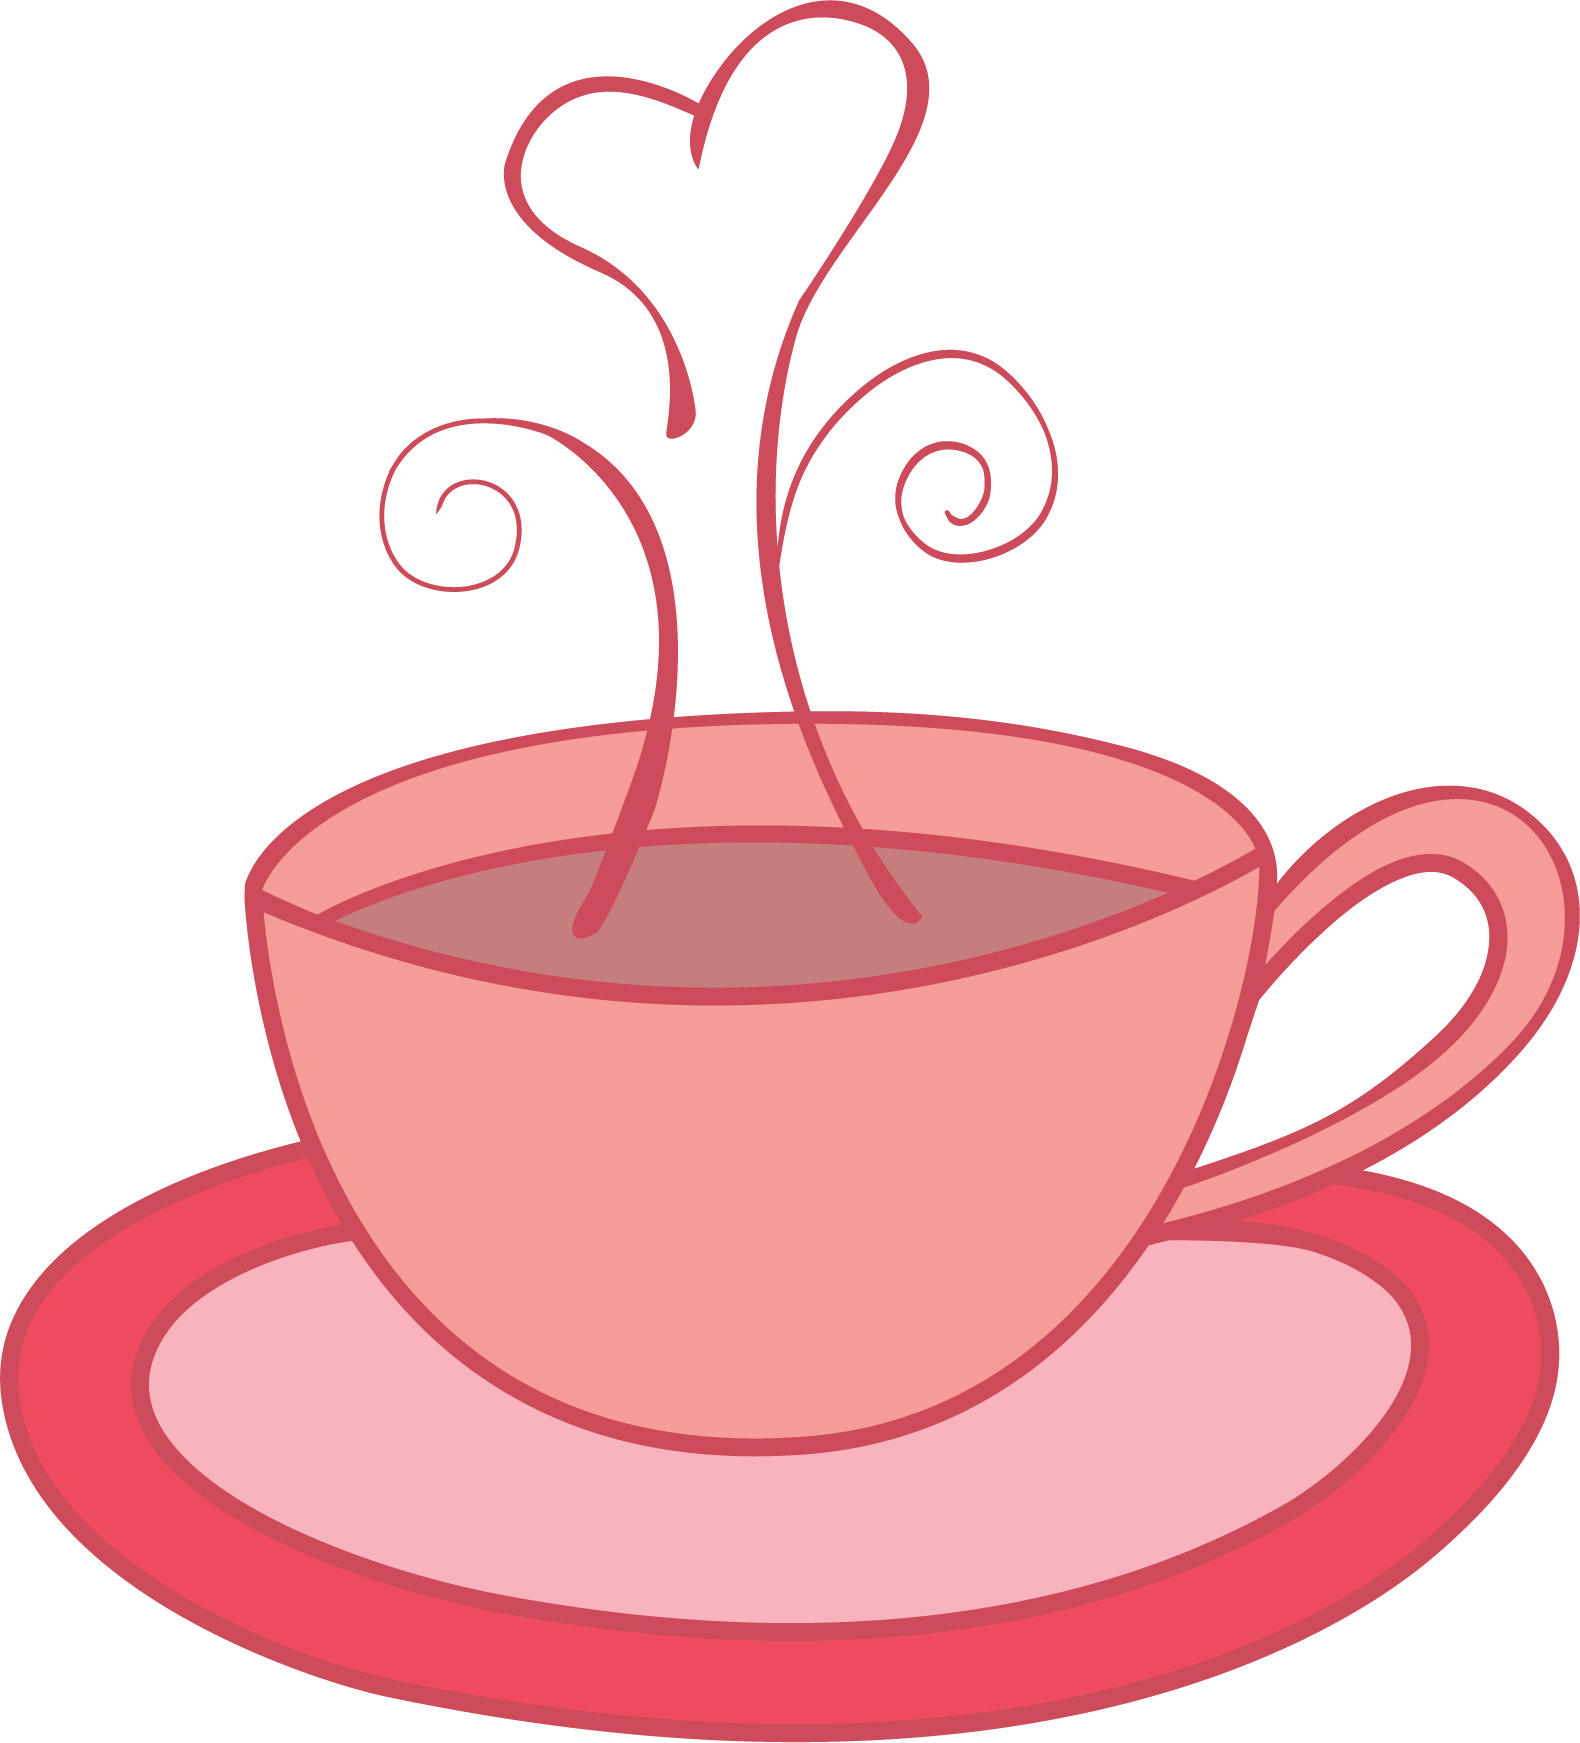 Tea cup clipart png. Collection of transparent